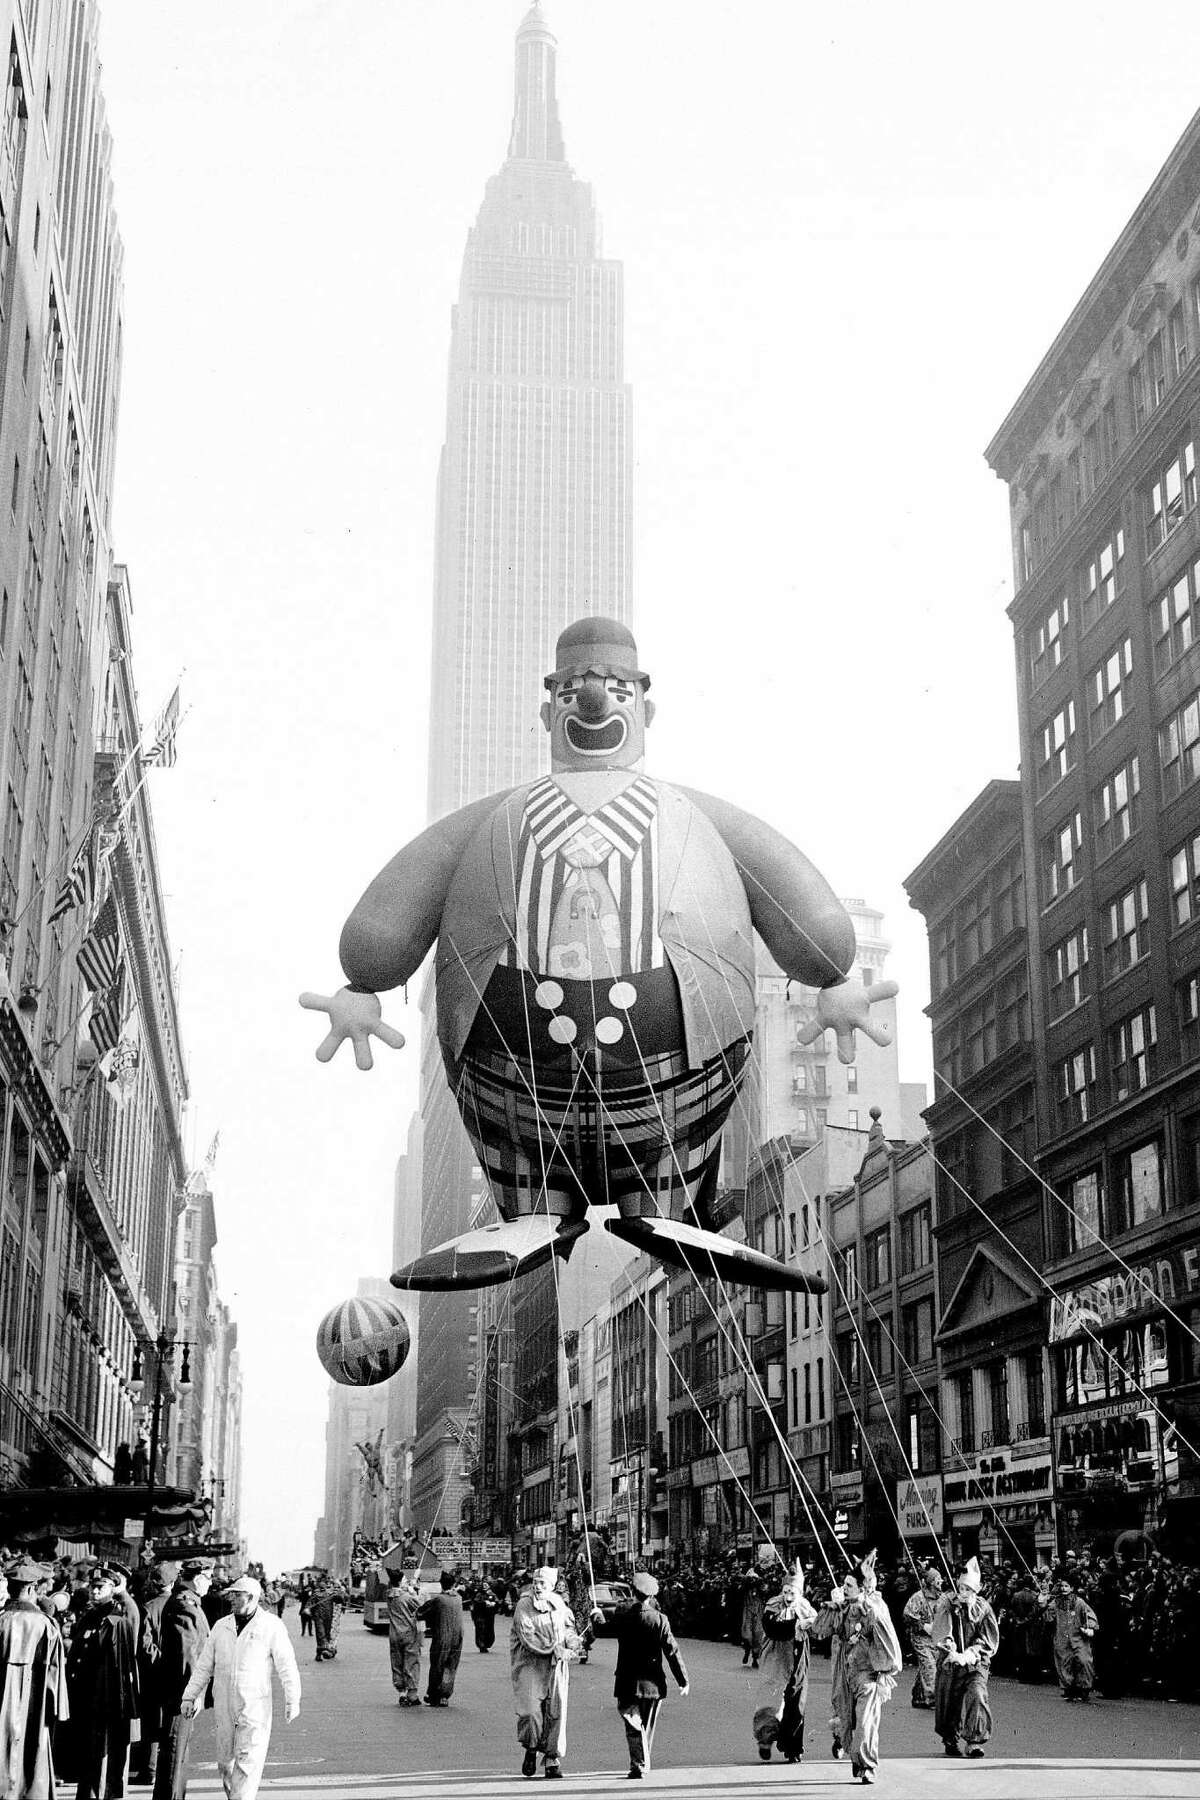 9) The Parade: Every year millions of Americans tune in to watch the Macy's Thanksgiving Parade, but did you know that the parade has European origins? In 1924, the store's immigrant employees decided to celebrate the beginning of the Christmas season like they would have in their European homelands-with a parade with knights, jugglers and clowns. The balloons weren't introduced until 1927.